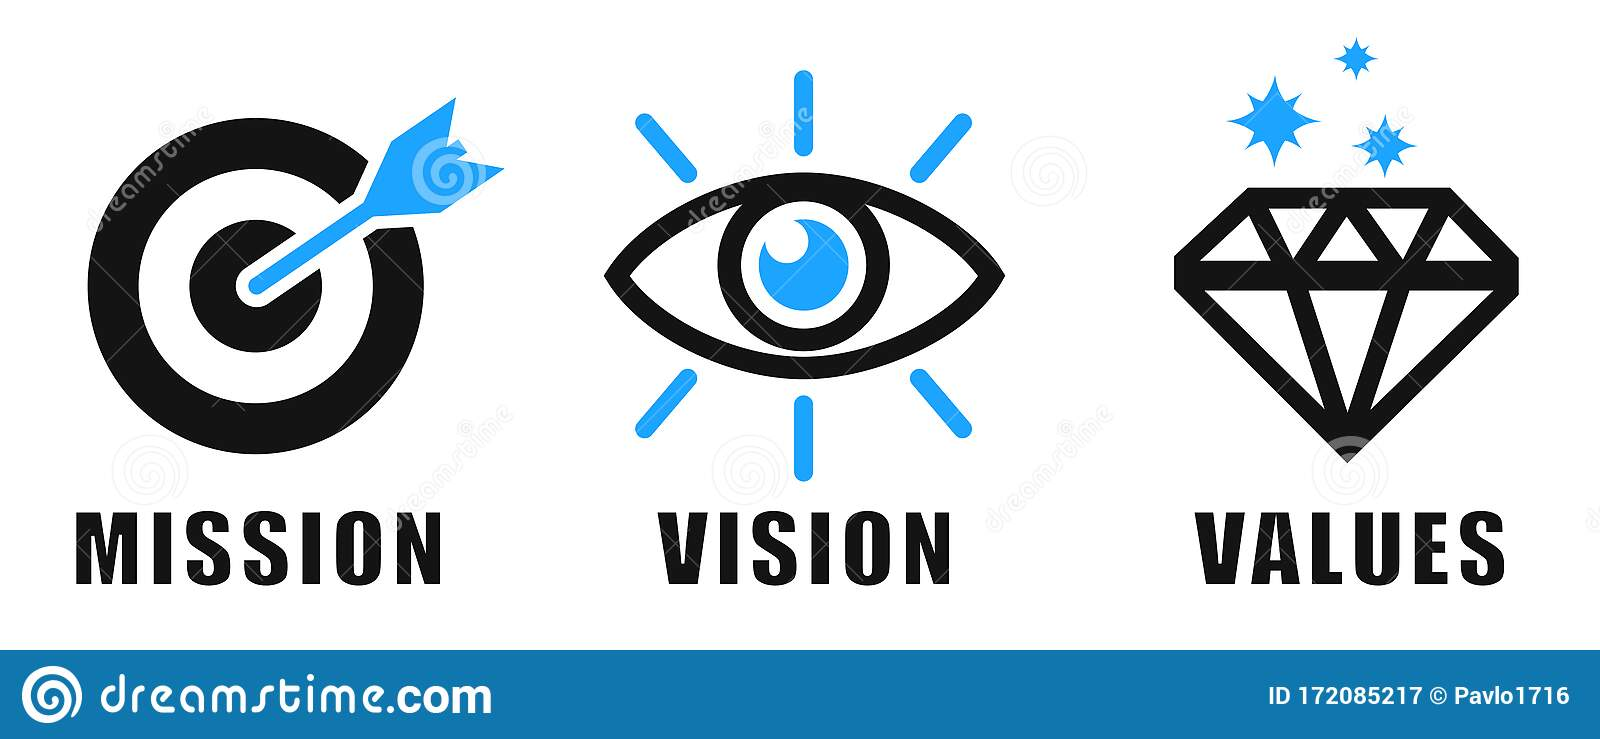 Mission, Vision, Values icons concept, business success and growth, web page template – vector